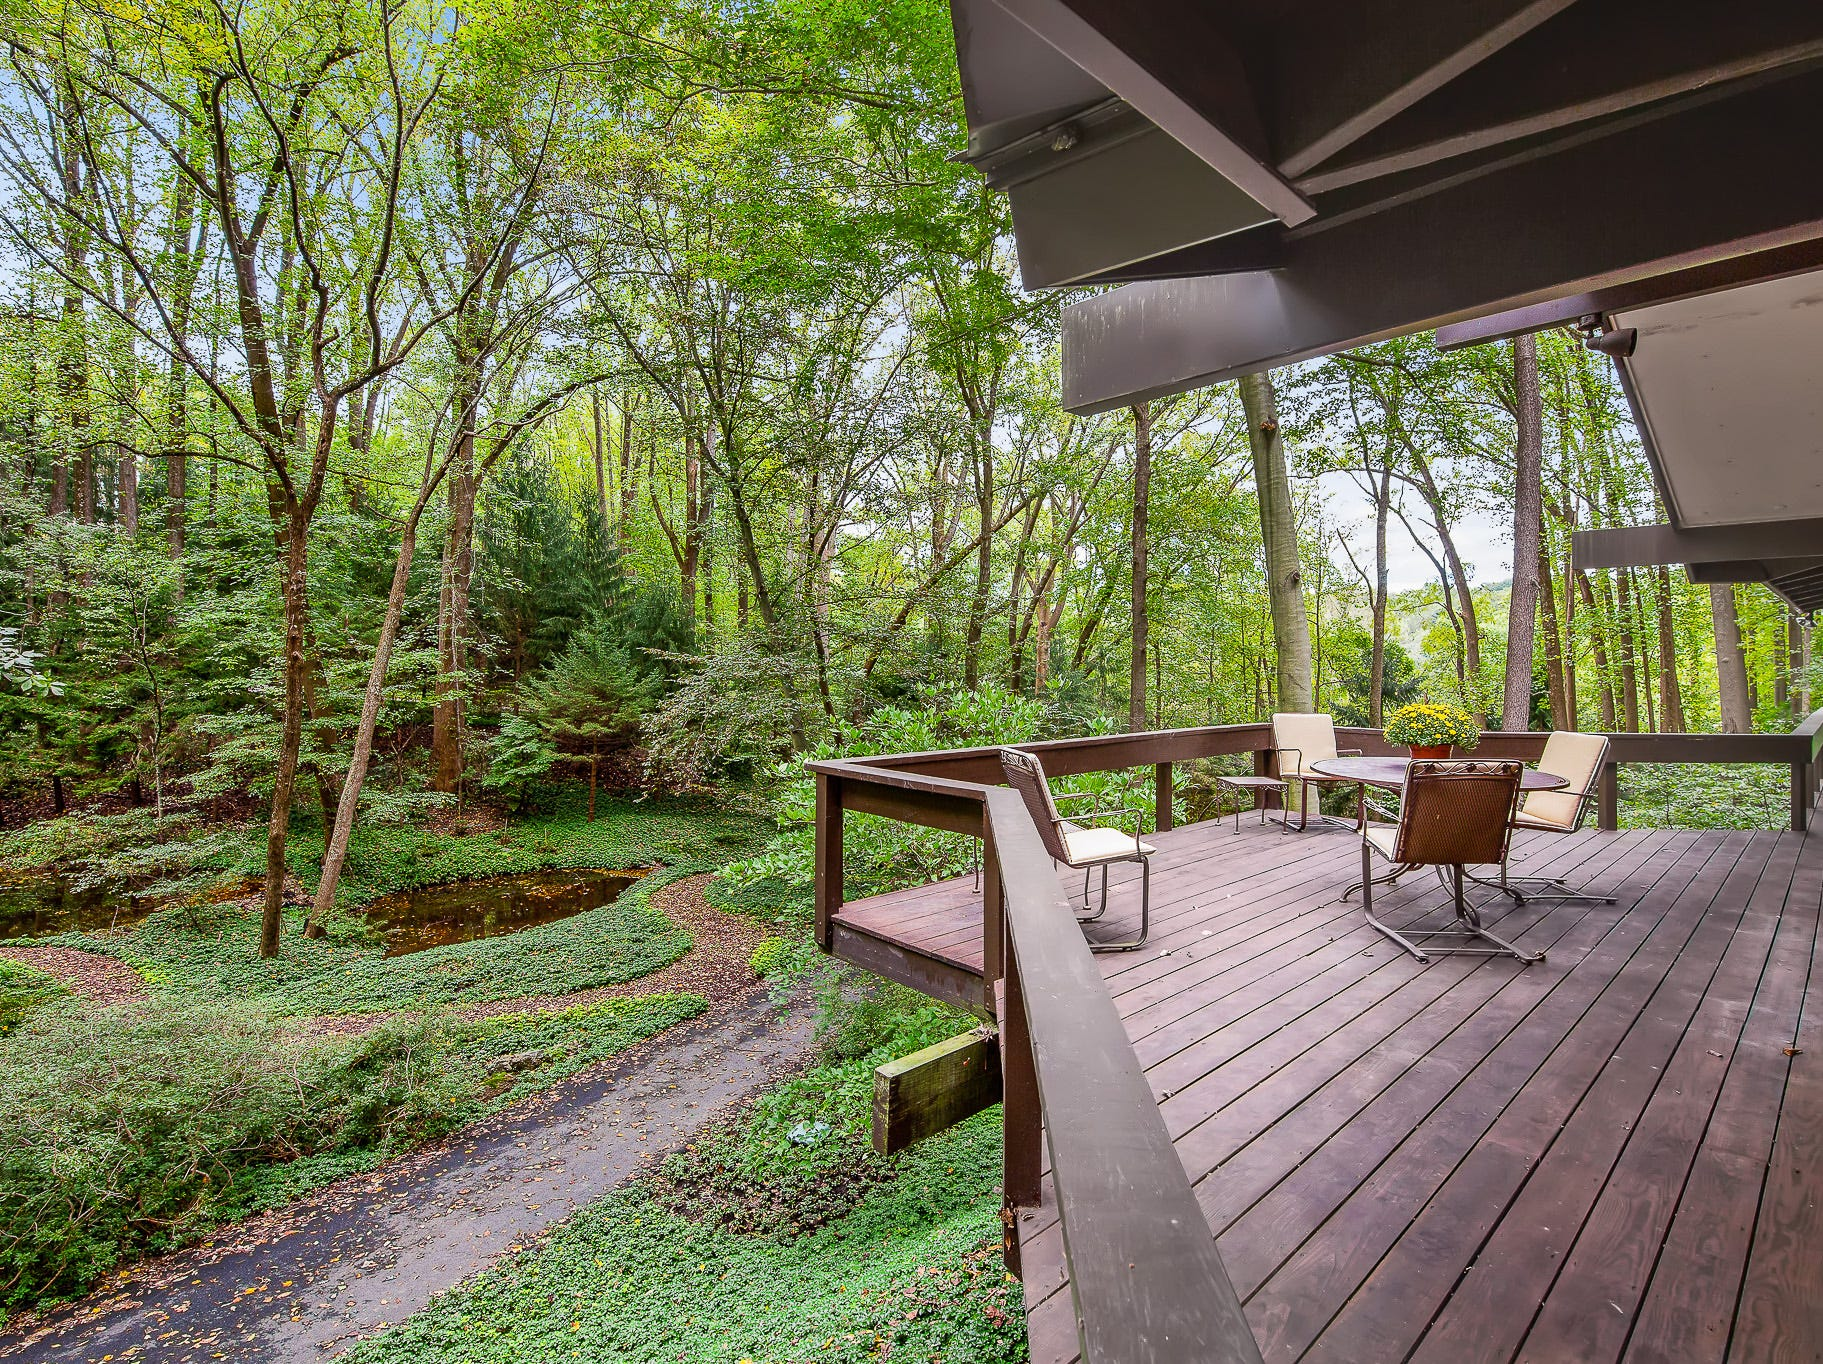 the deck that wraps around 110 Thissell in Greenville turns it into your own private tree house.